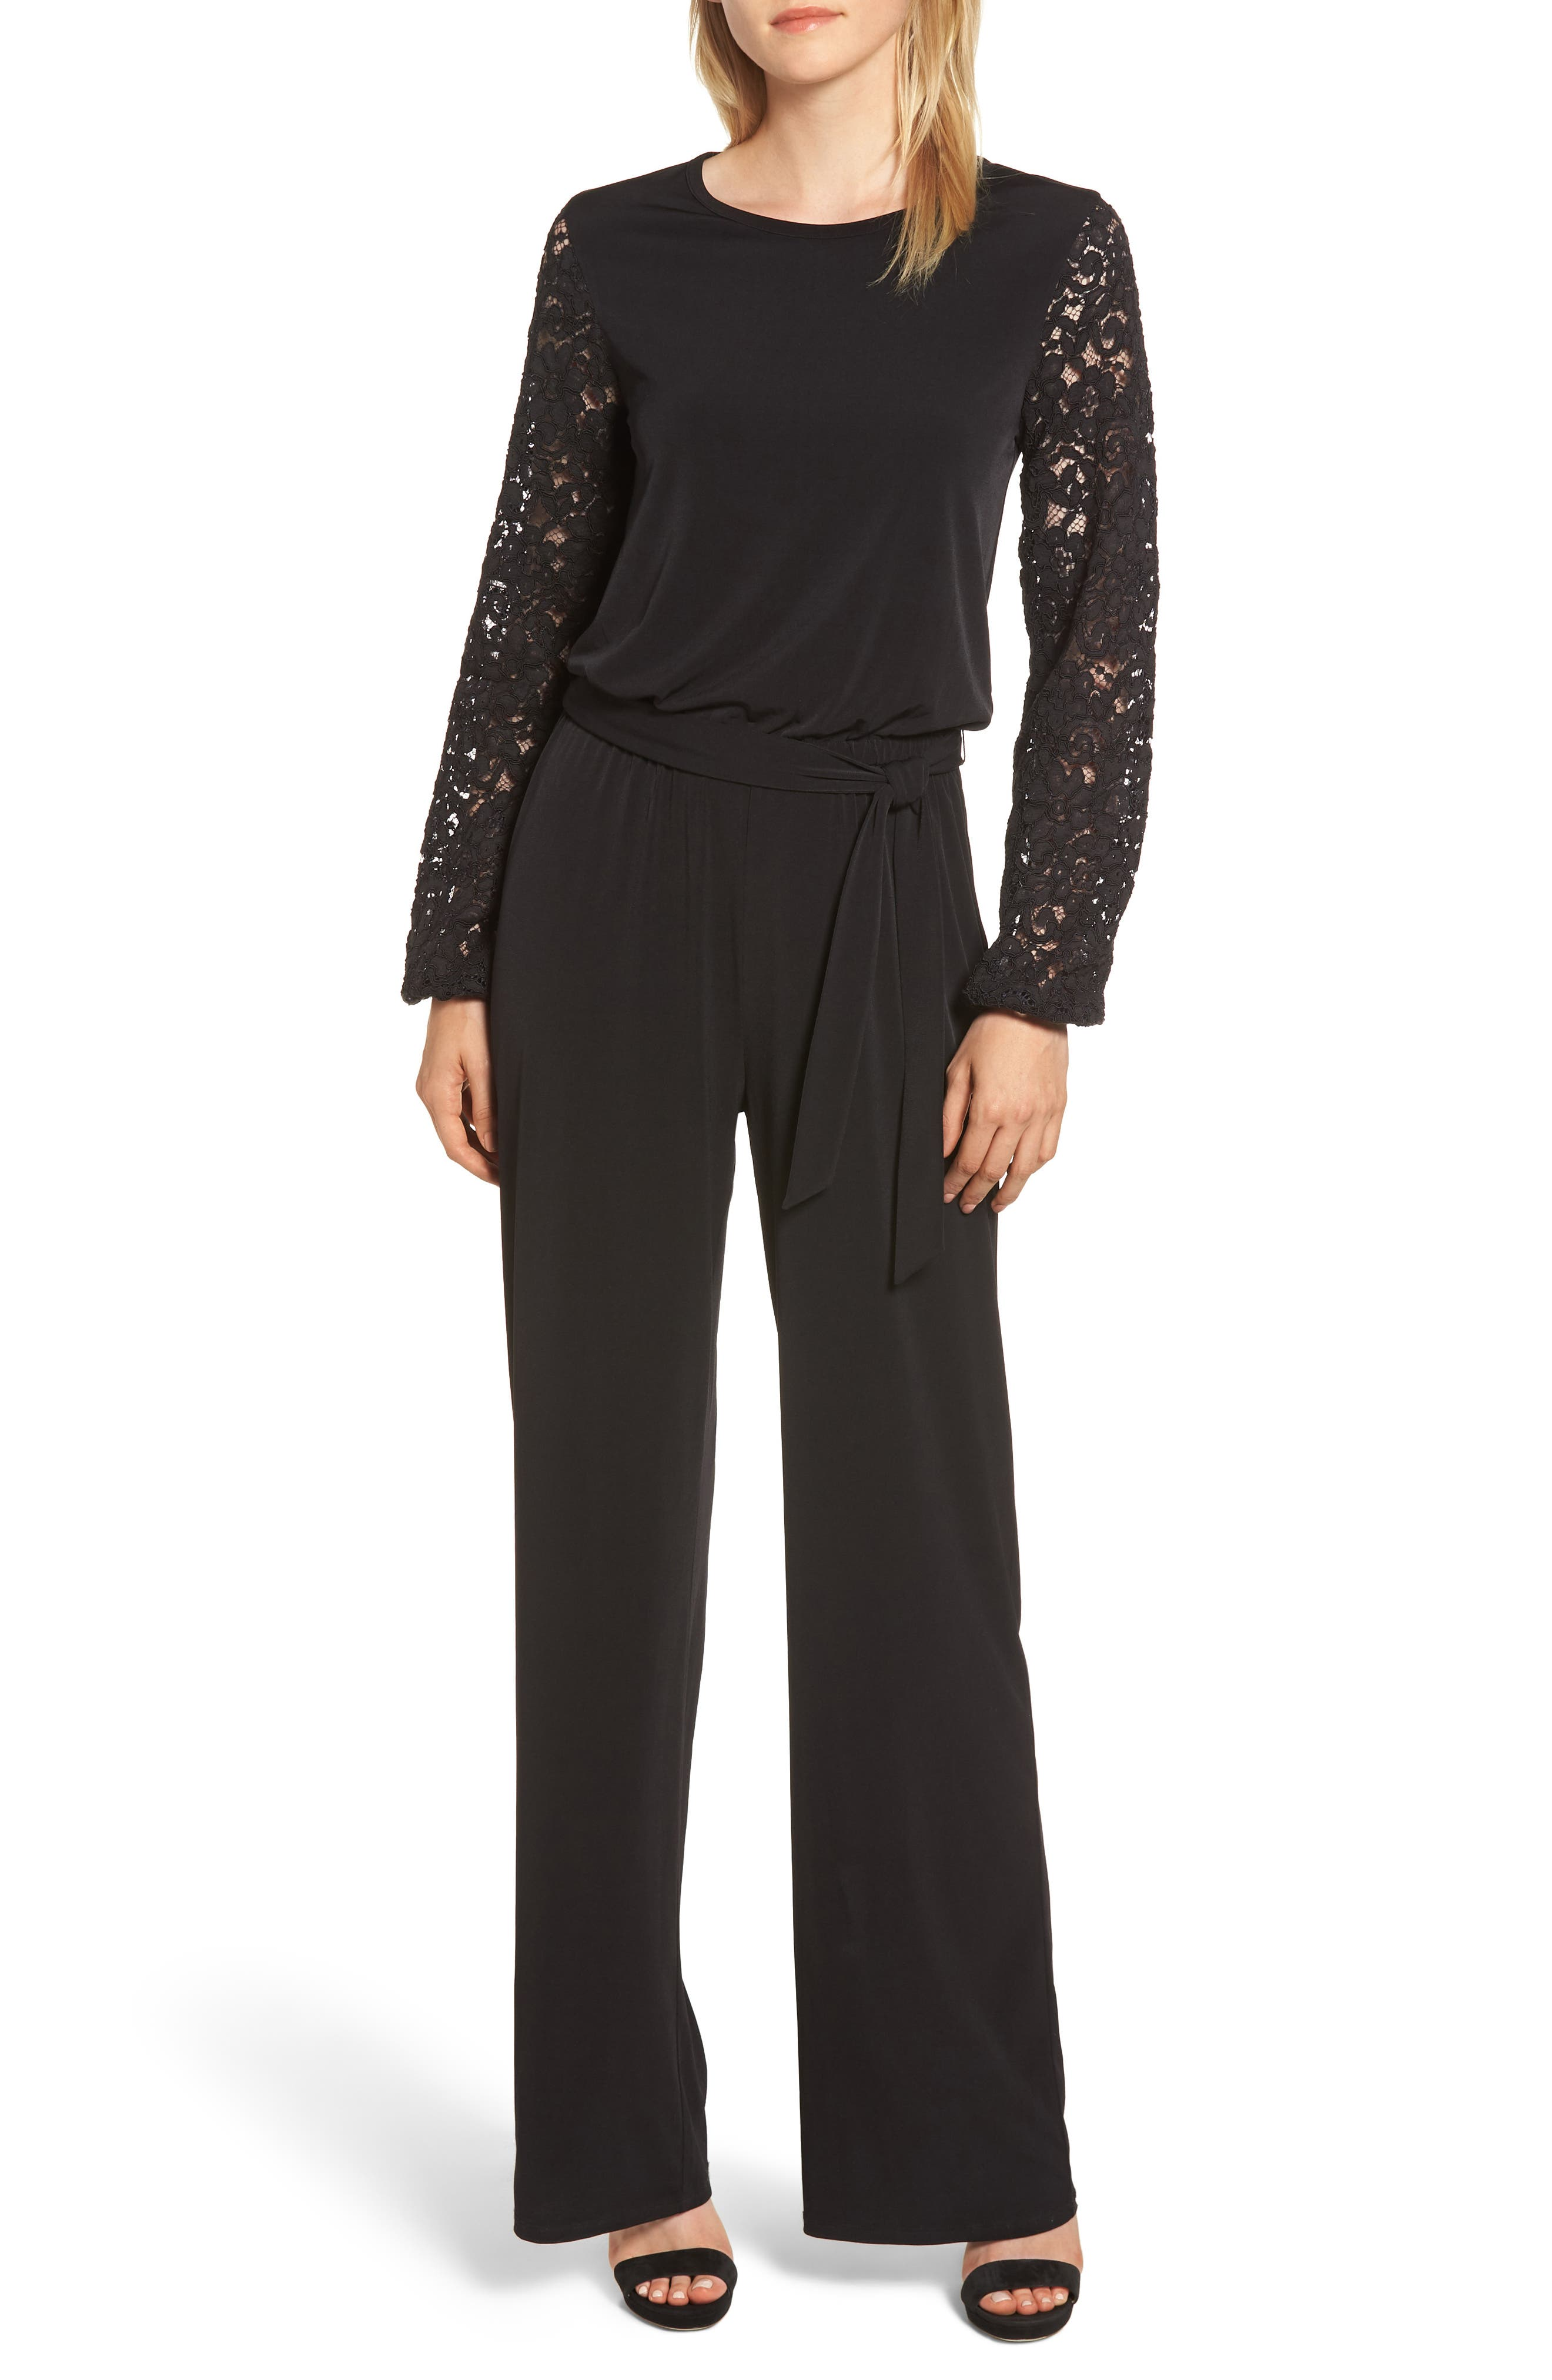 Jewel-Neck Lace-Sleeve Jumpsuit With Belted Waist in Black